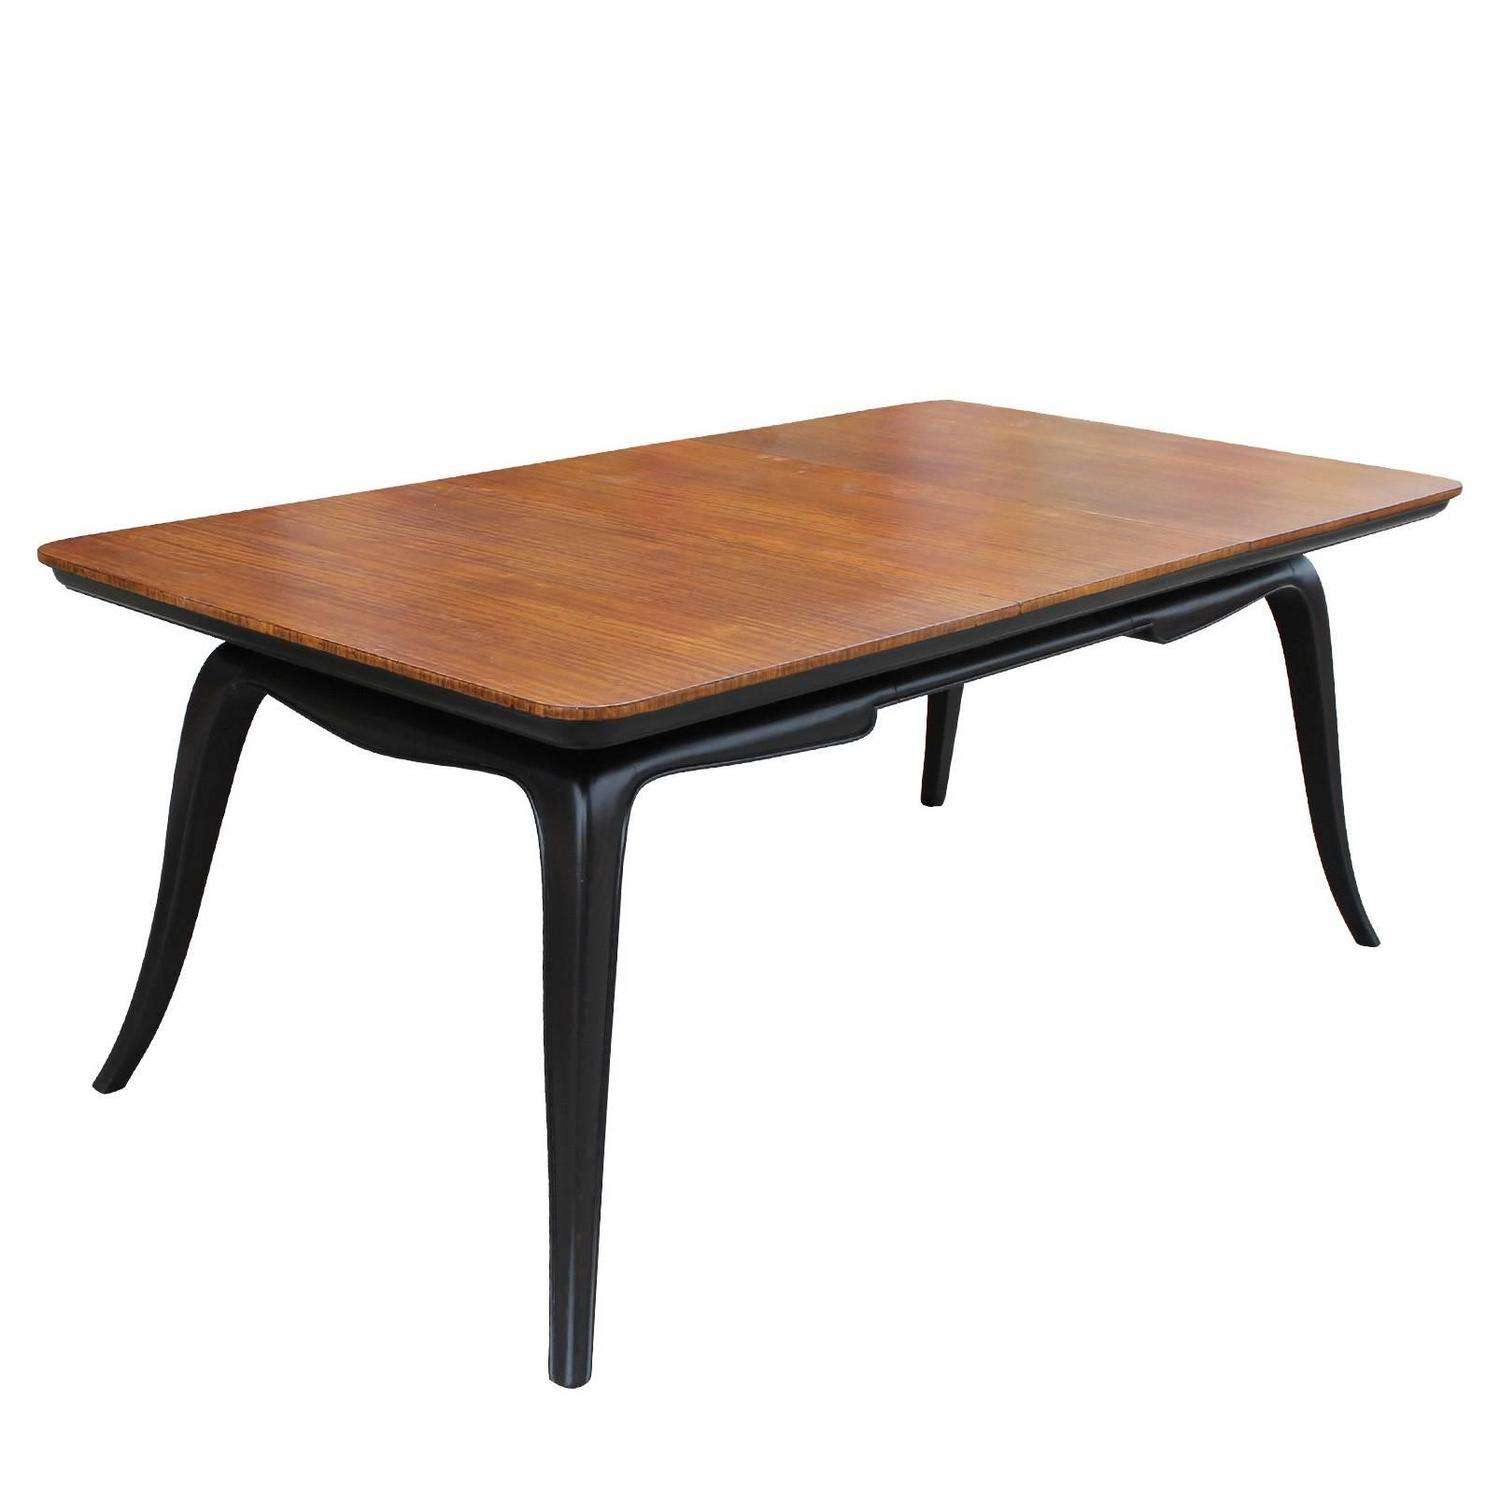 sculptural argentine two tone dining table for sale at 1stdibs On 2 tone dining room tables